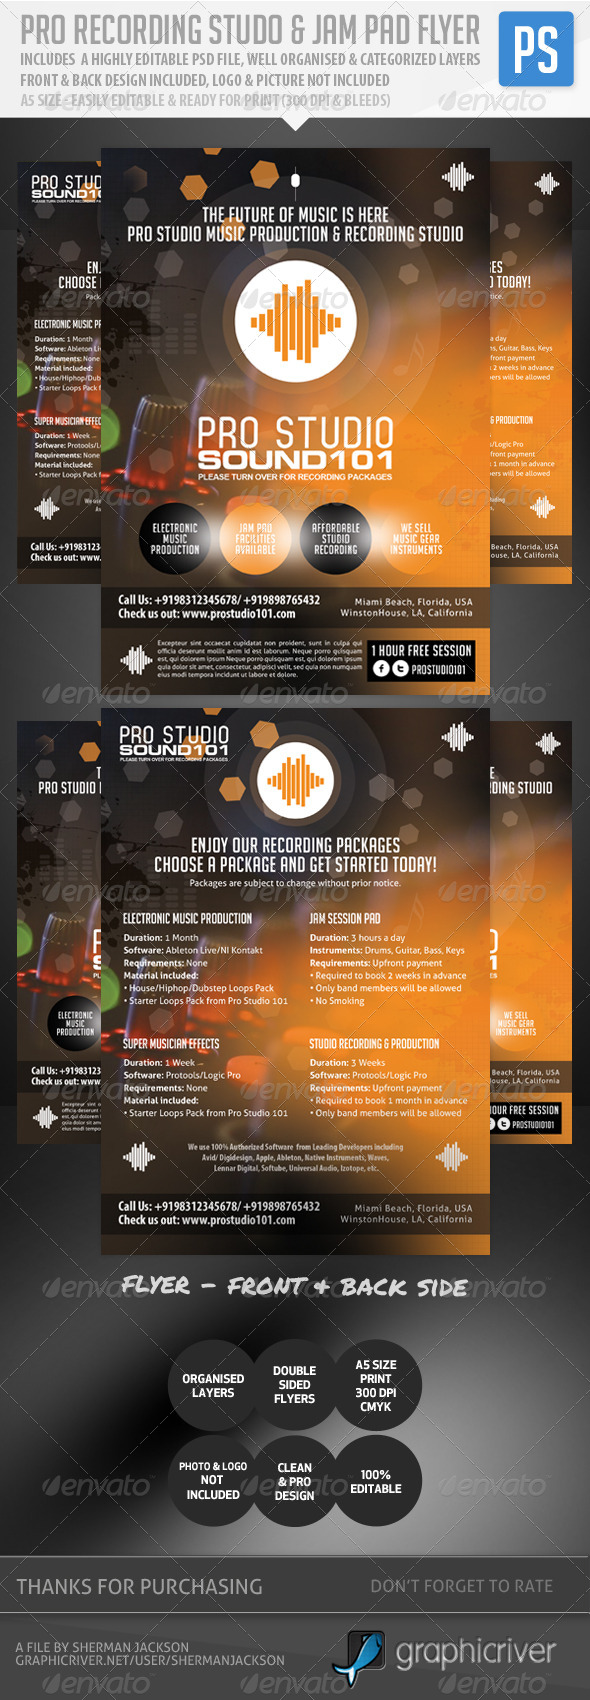 GraphicRiver Pro Recording Studio & Jam Pad Flyer 5088742